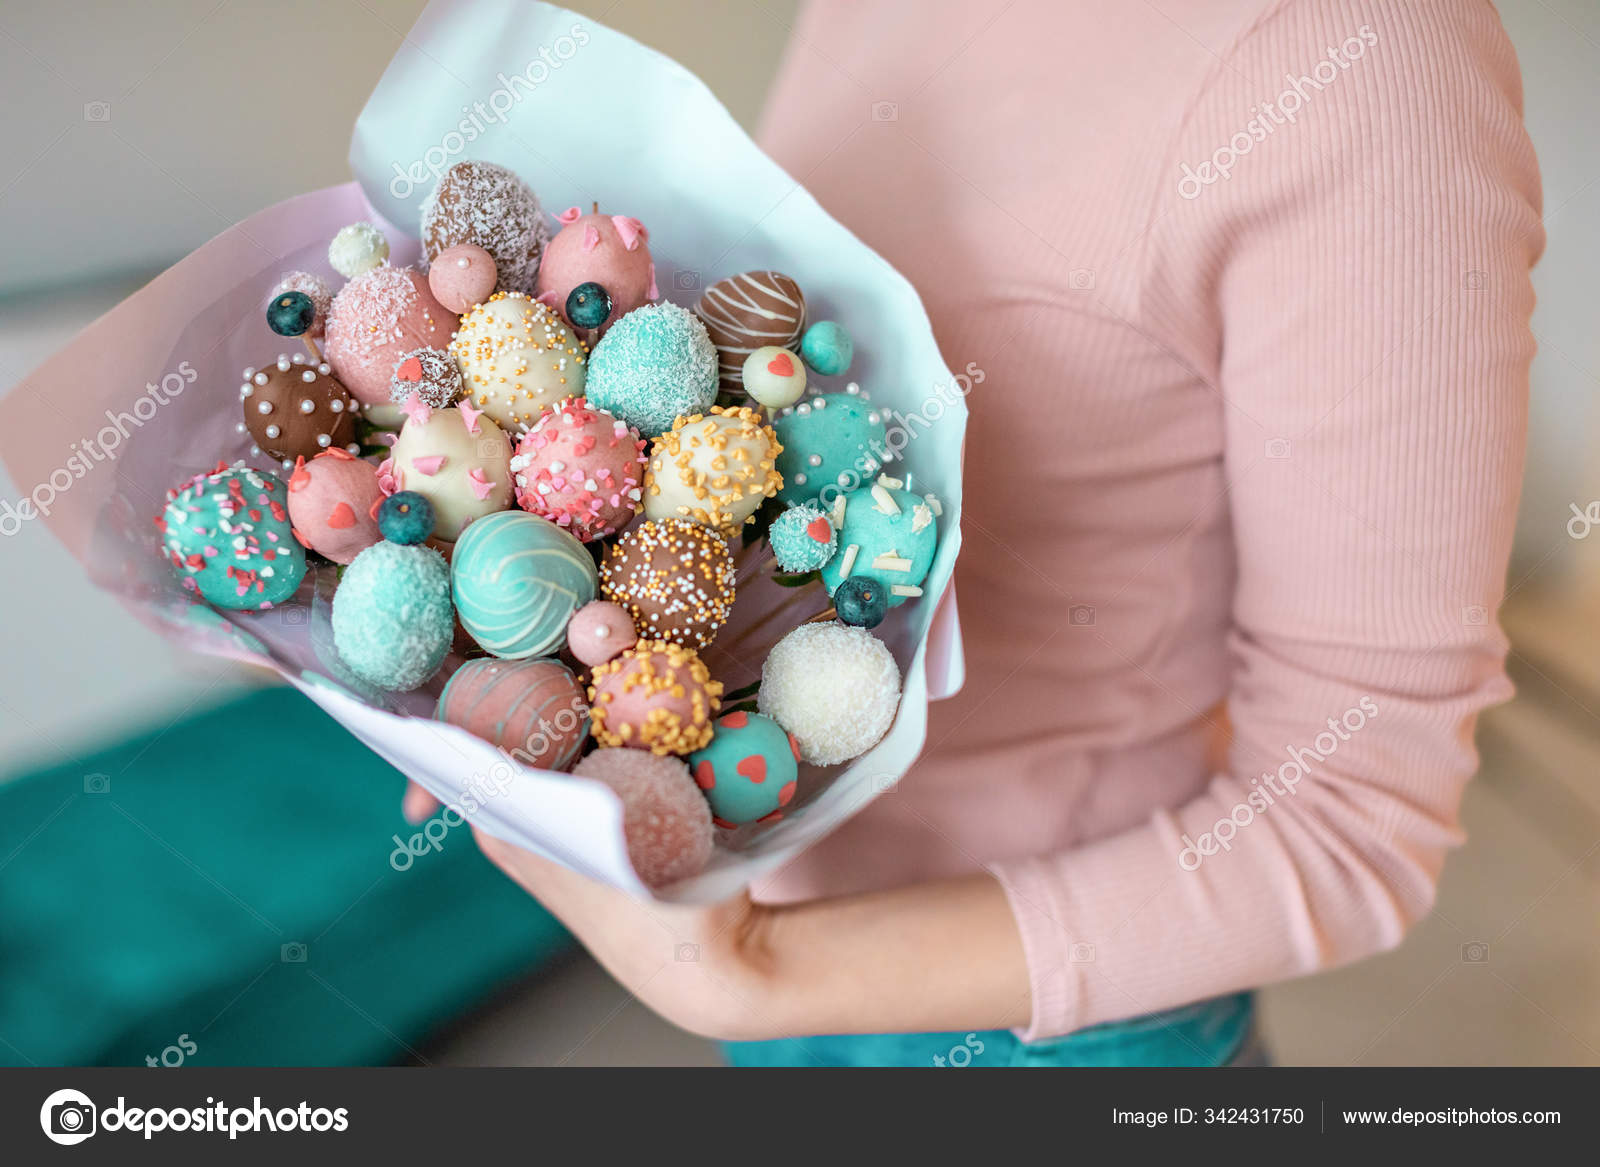 A Bouquet Of Chocolate Covered Strawberries In Woman Hands Stock Photo C Dtatiana 342431750